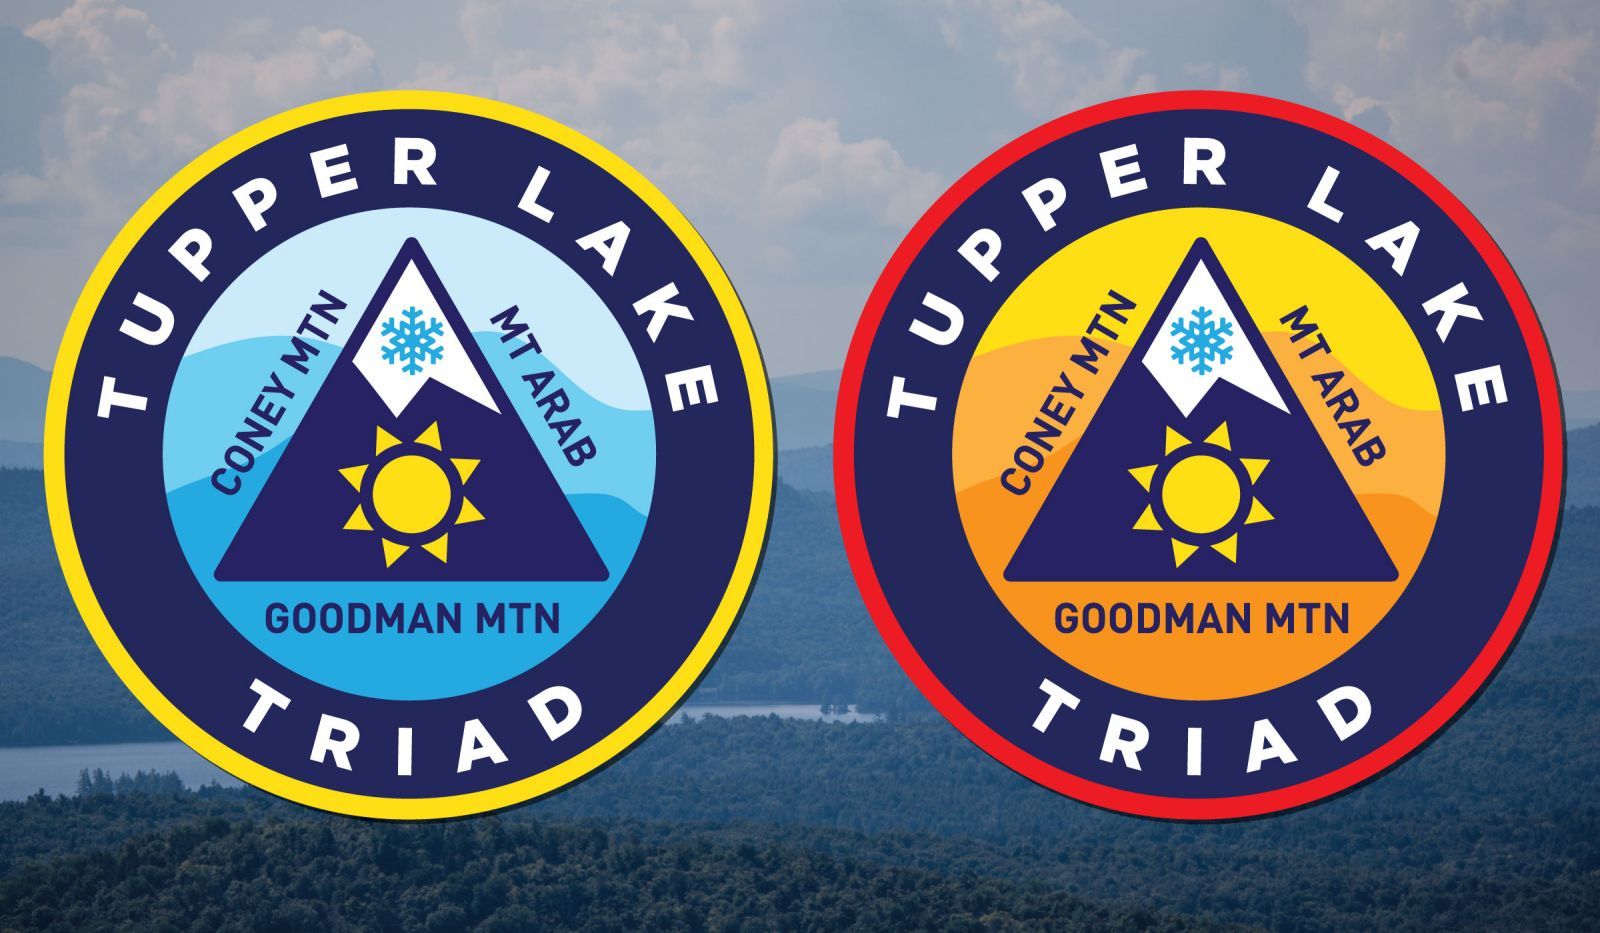 Summer and winter patches are available when you complete the triad.